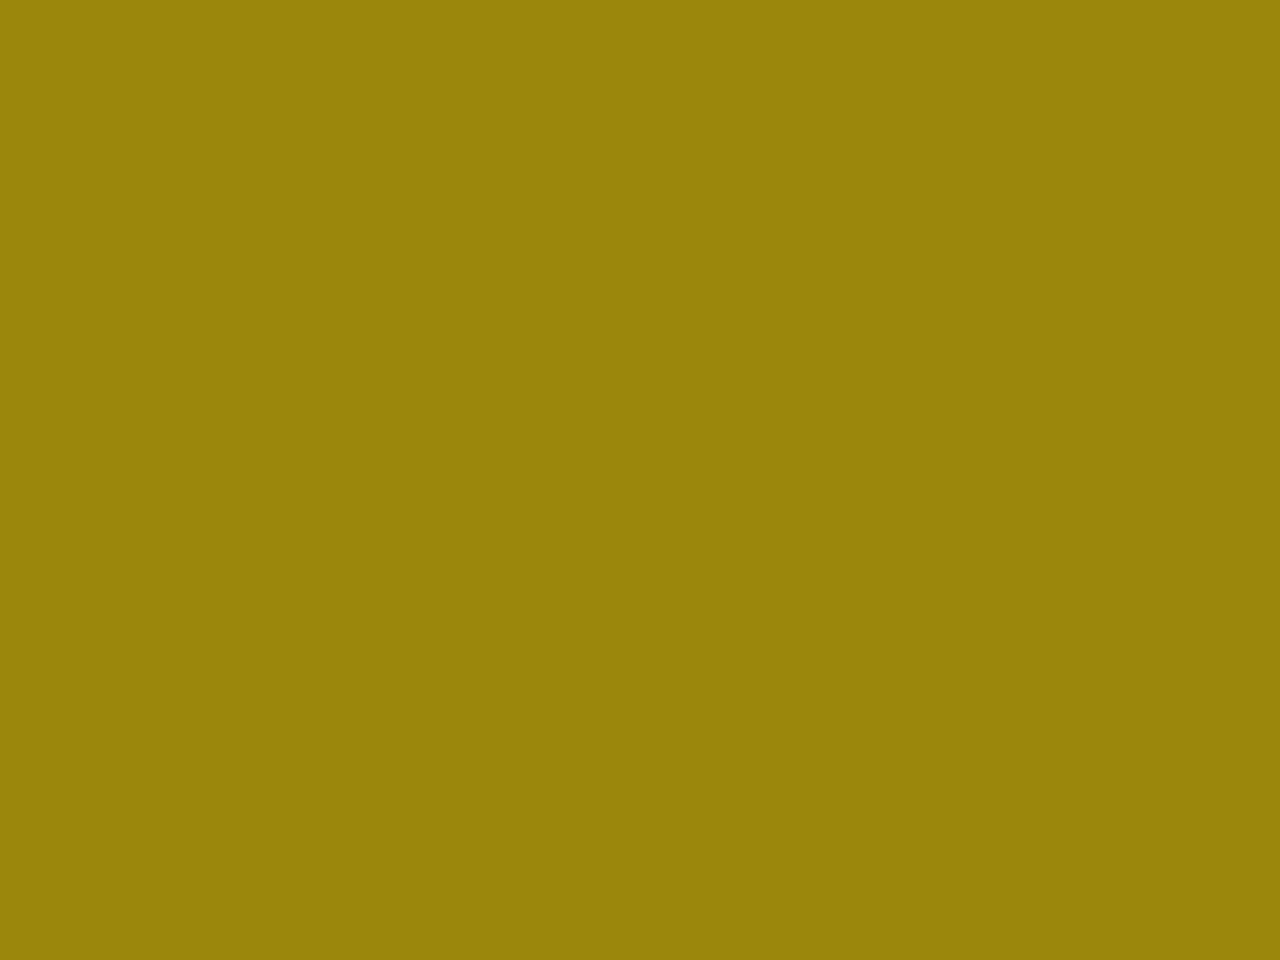 1280x960 Dark Yellow Solid Color Background